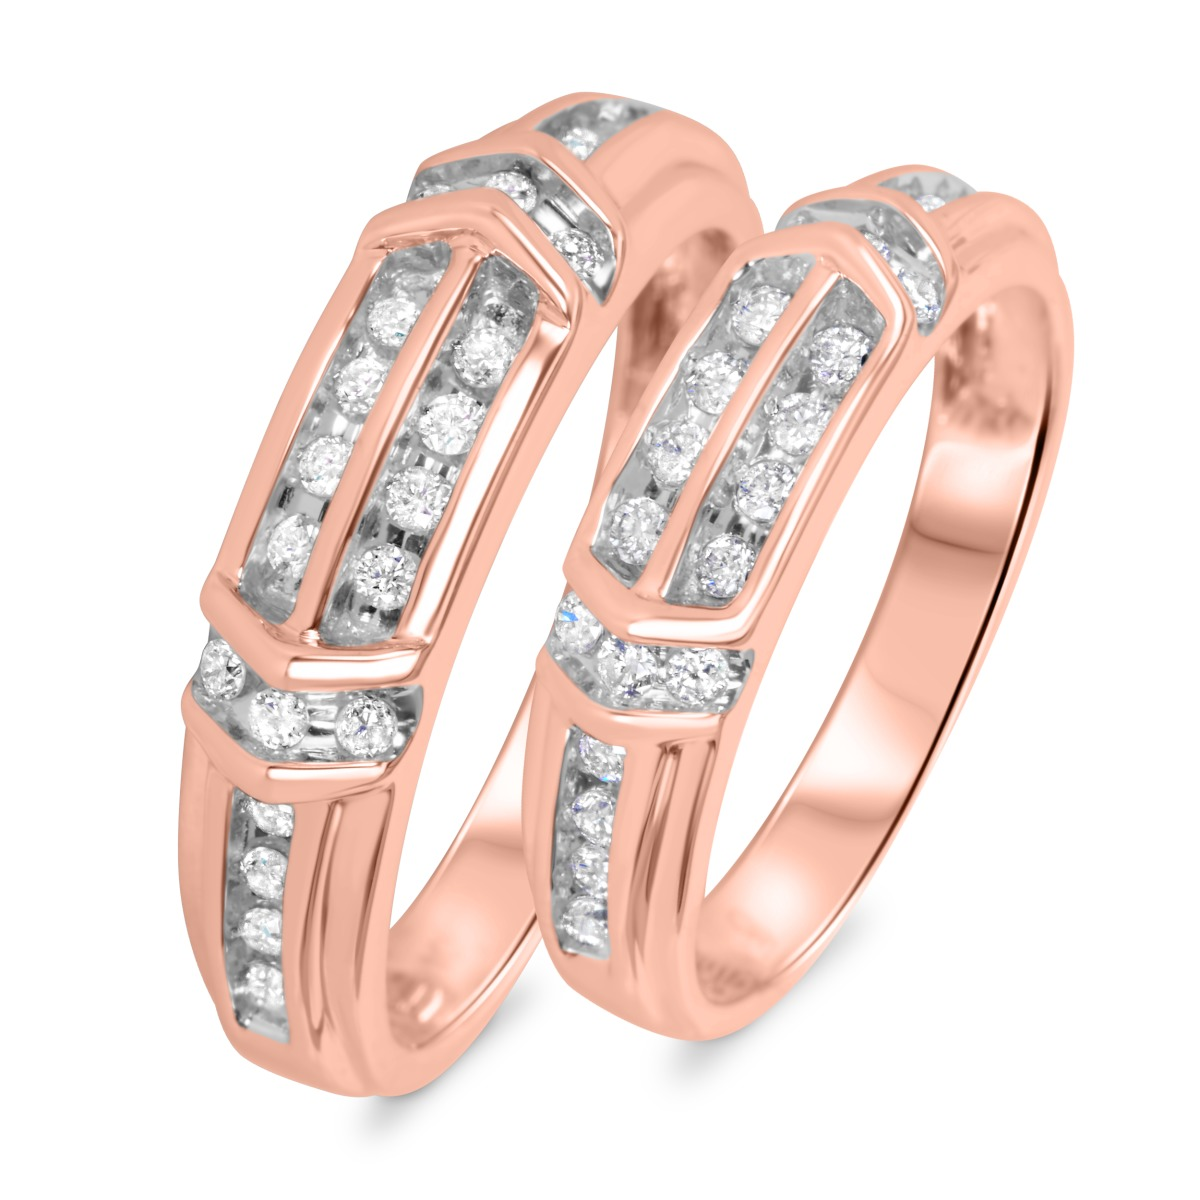 1/2 CT. T.W. Diamond His And Hers Wedding Band Set 10K Rose Gold